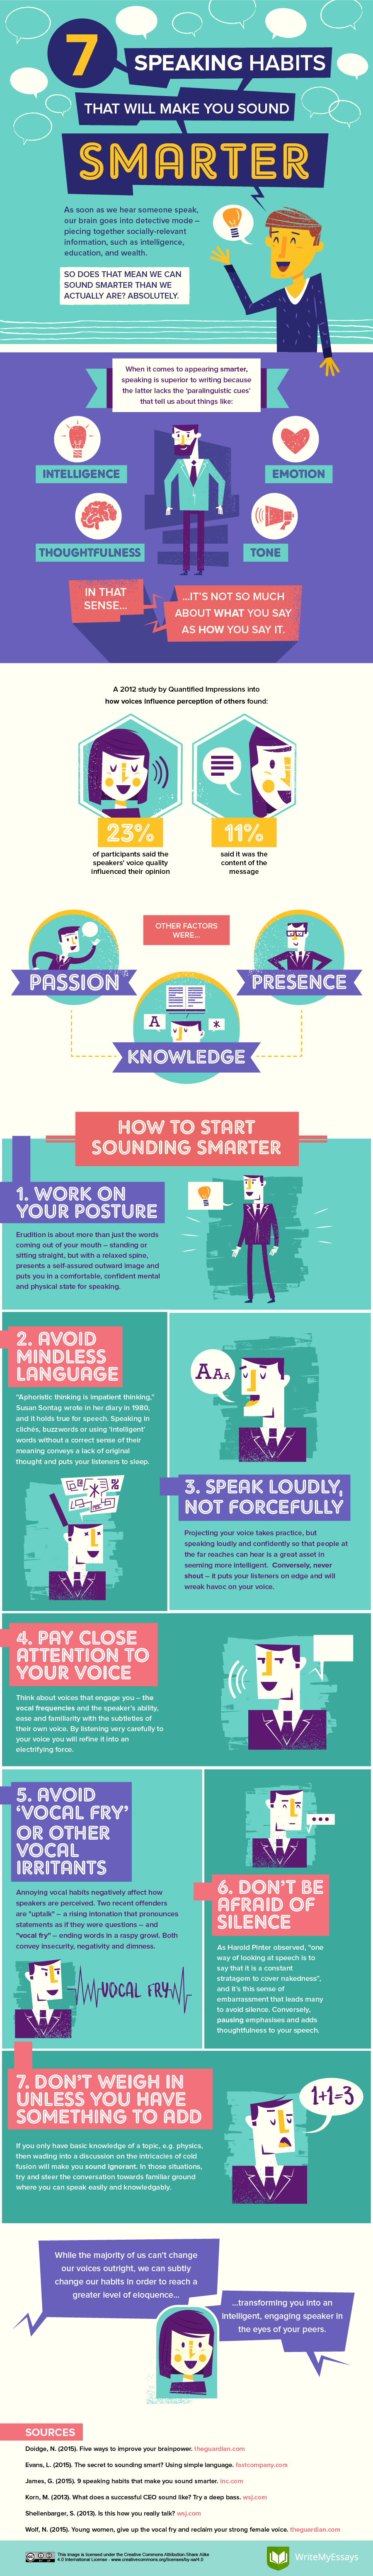 good body language examples to use in presentations body 7 speaking habits that will make you sound smarter infographic write my essays